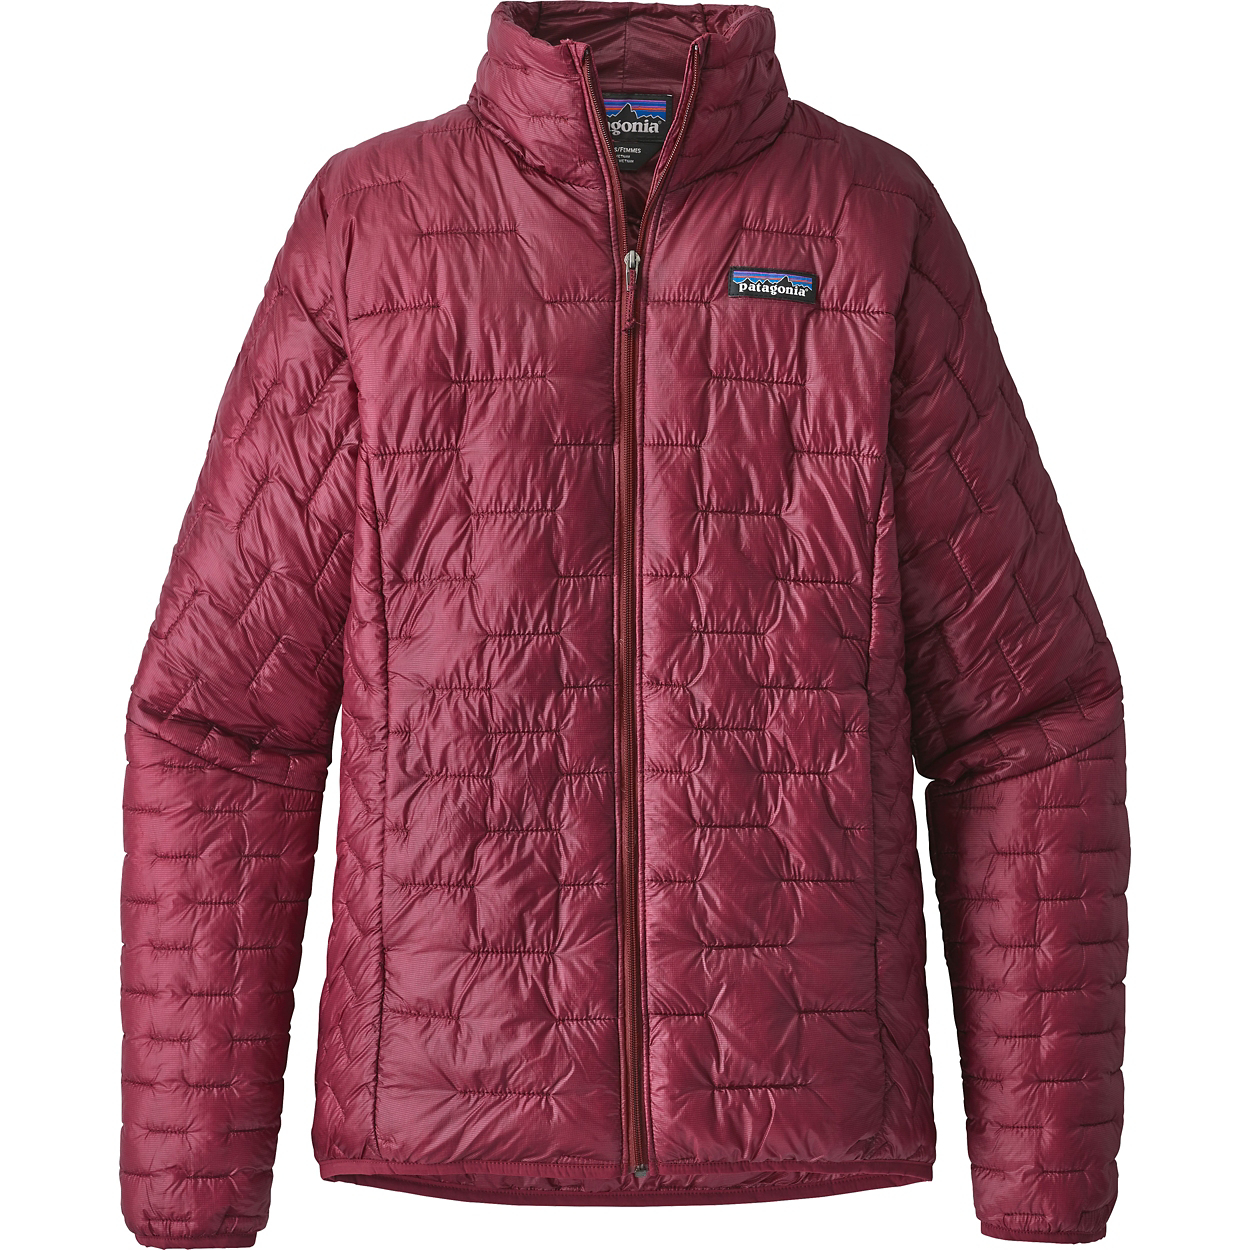 15d0a61ab Women's Apparel and Gear at MountainGear.com